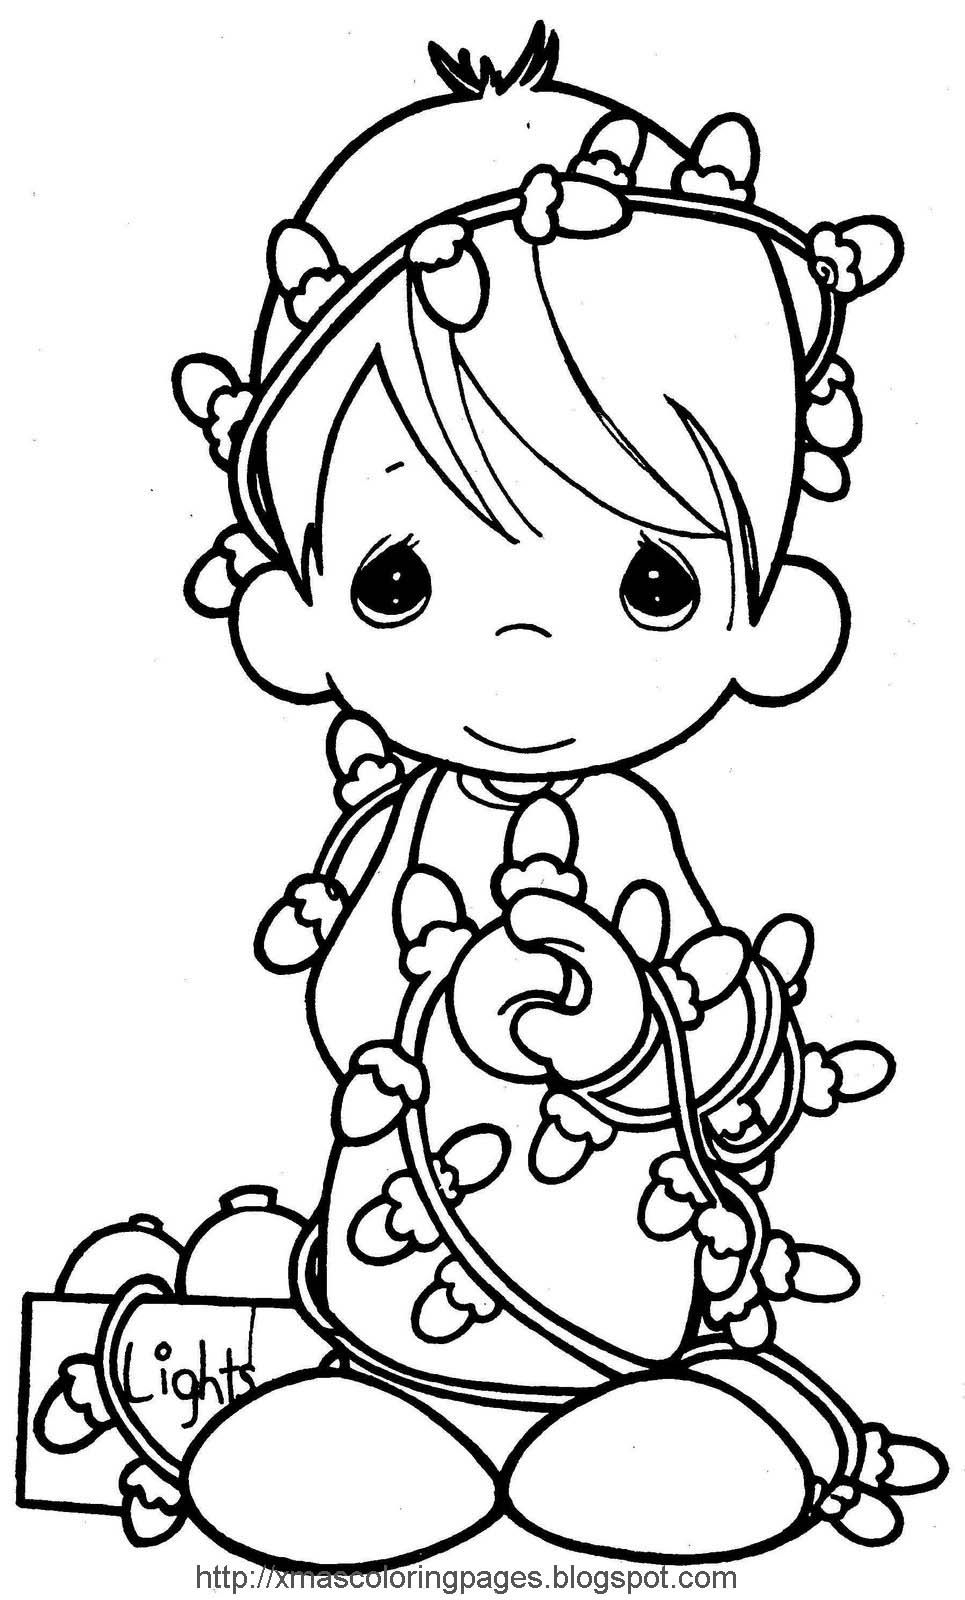 Xmas Coloring Book With Site Hundreds Of Free Printable Pages Here